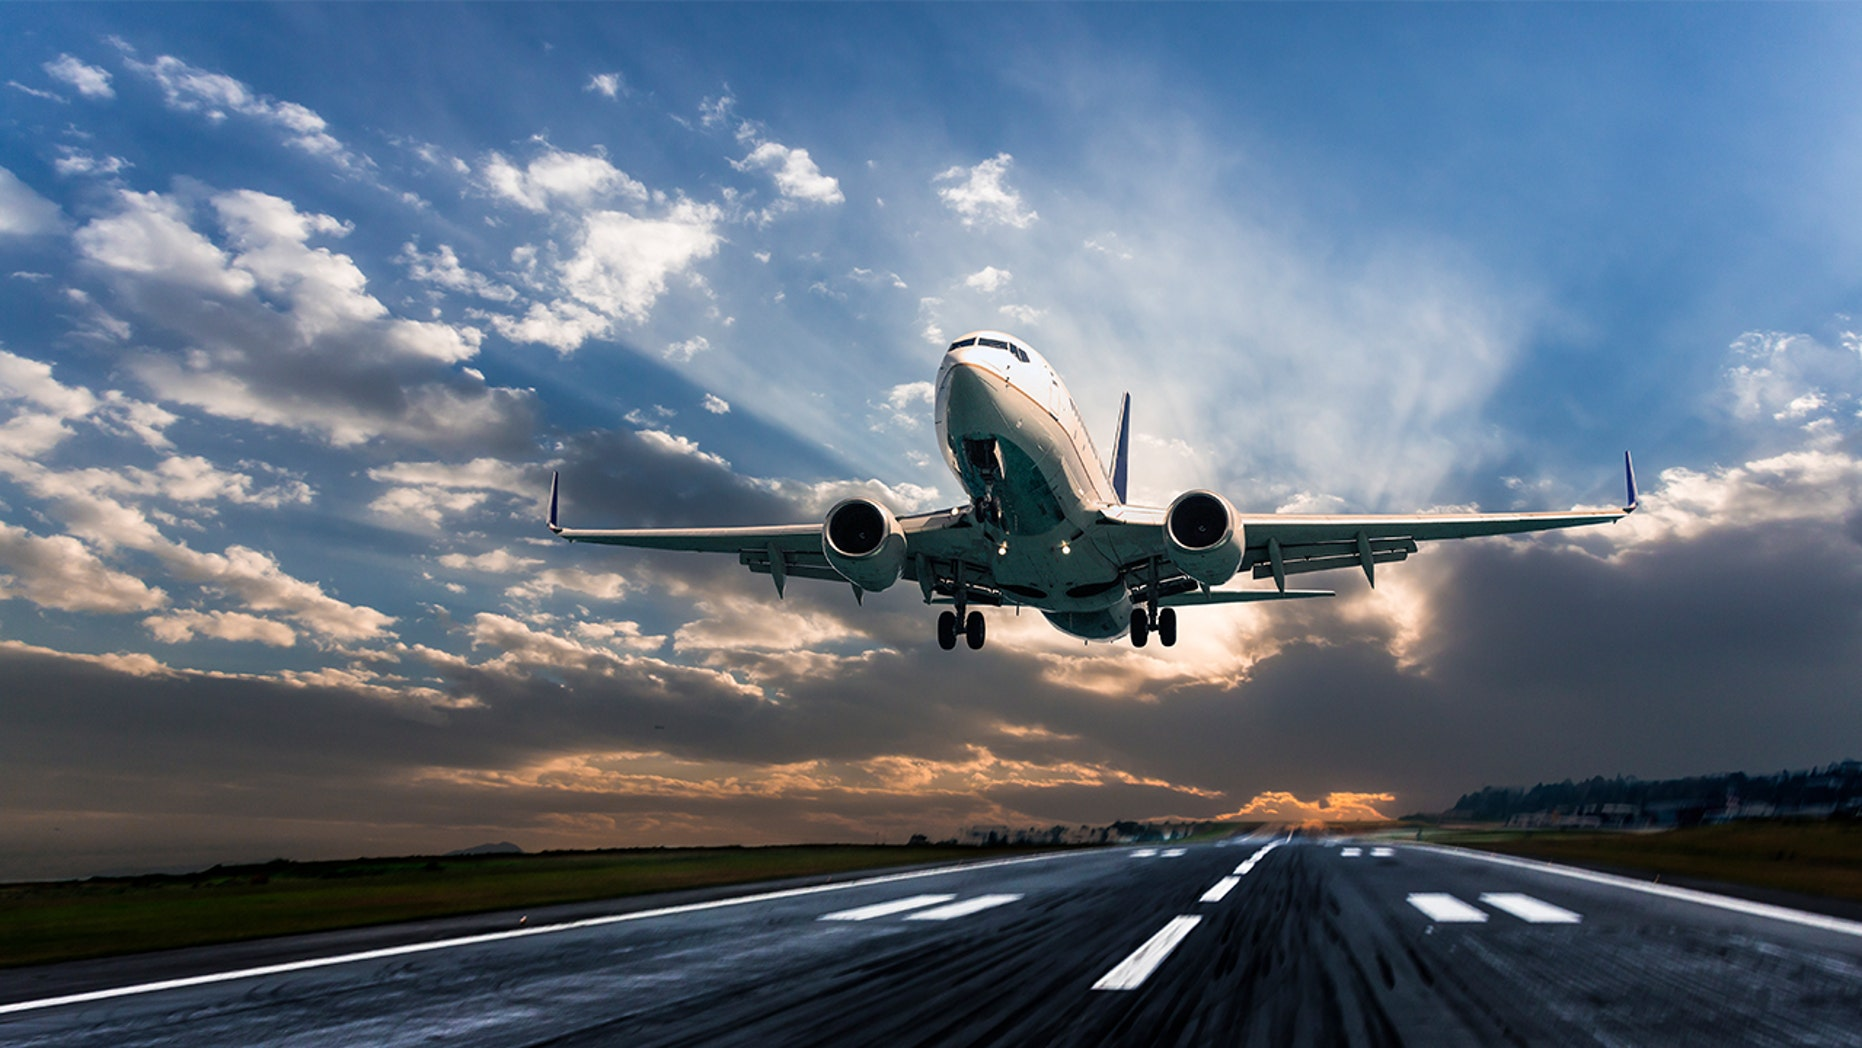 Don't let the cost of air travel keep you from yourdream trip. Save big with these tips.